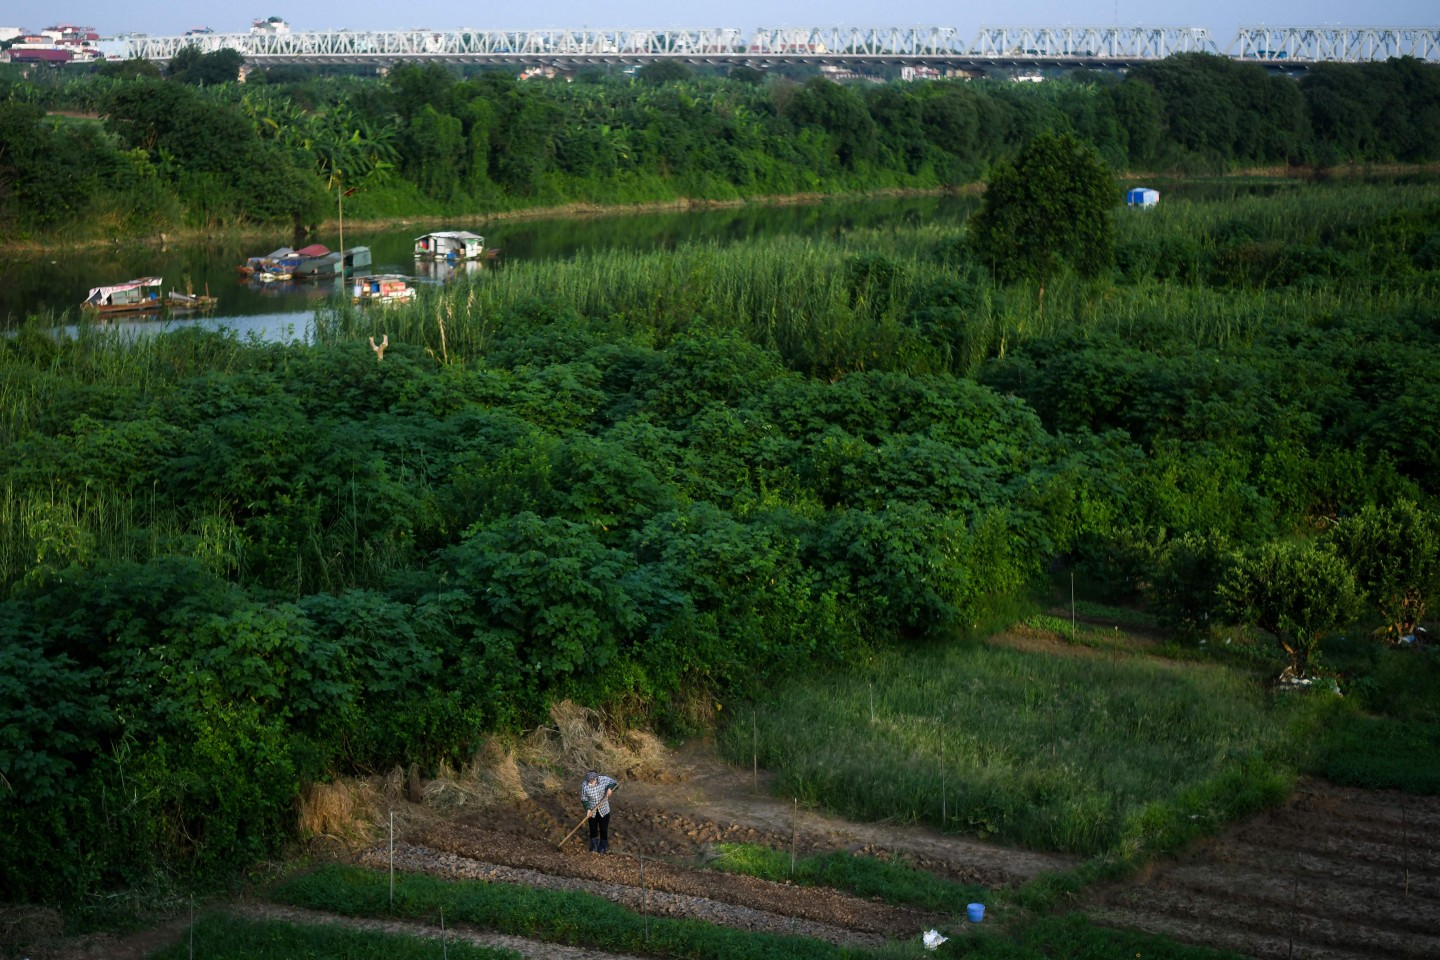 A Vietnamese woman works on a farm by the banks of Red River in Hanoi on September 3, 2019. (Photo by Manan VATSYAYANA / AFP)